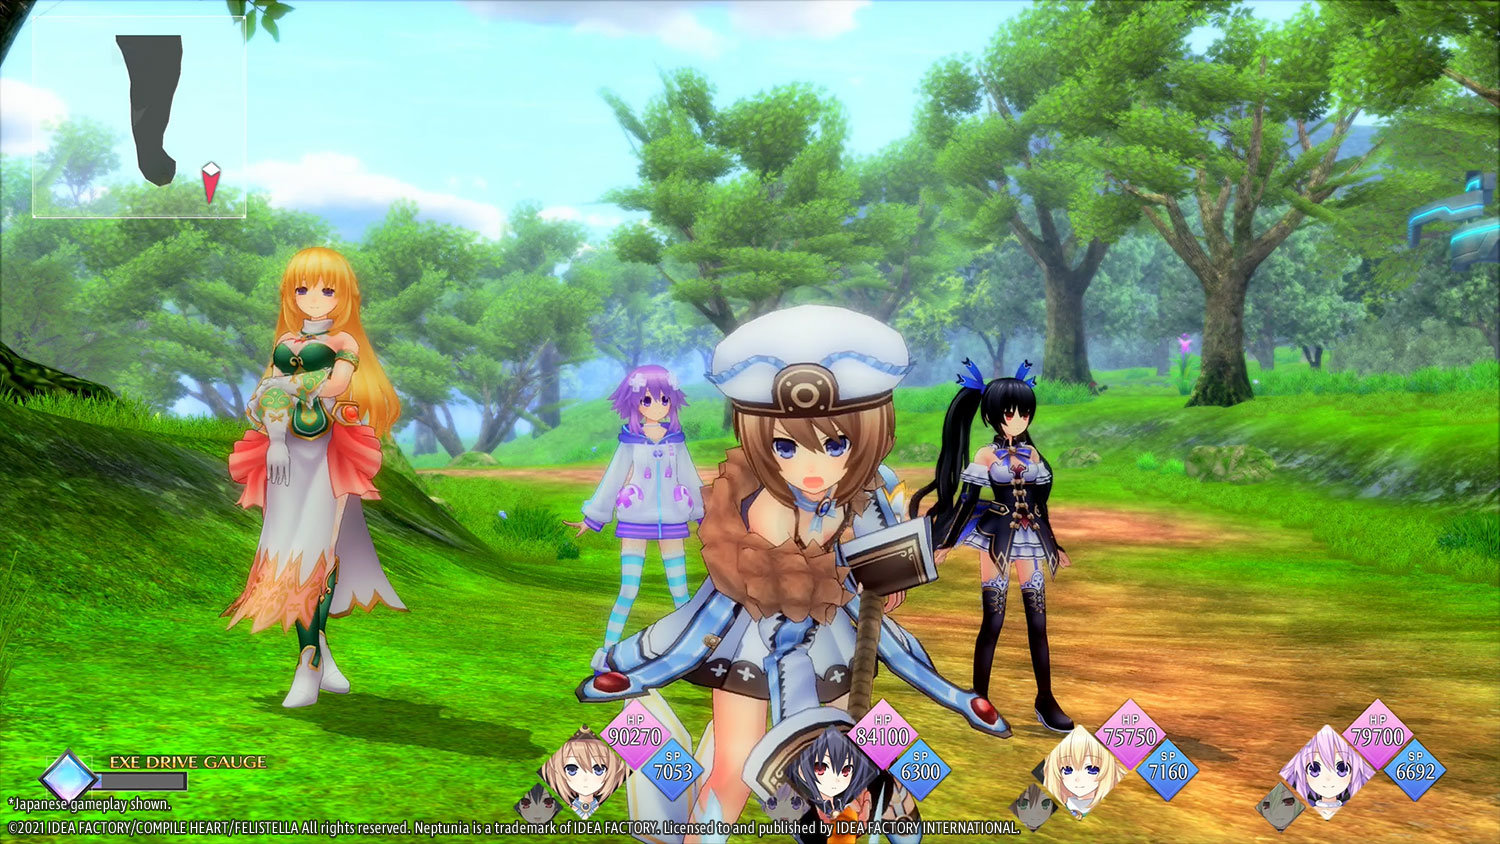 Neptunia Reverse Blanc Running Ahead of the party